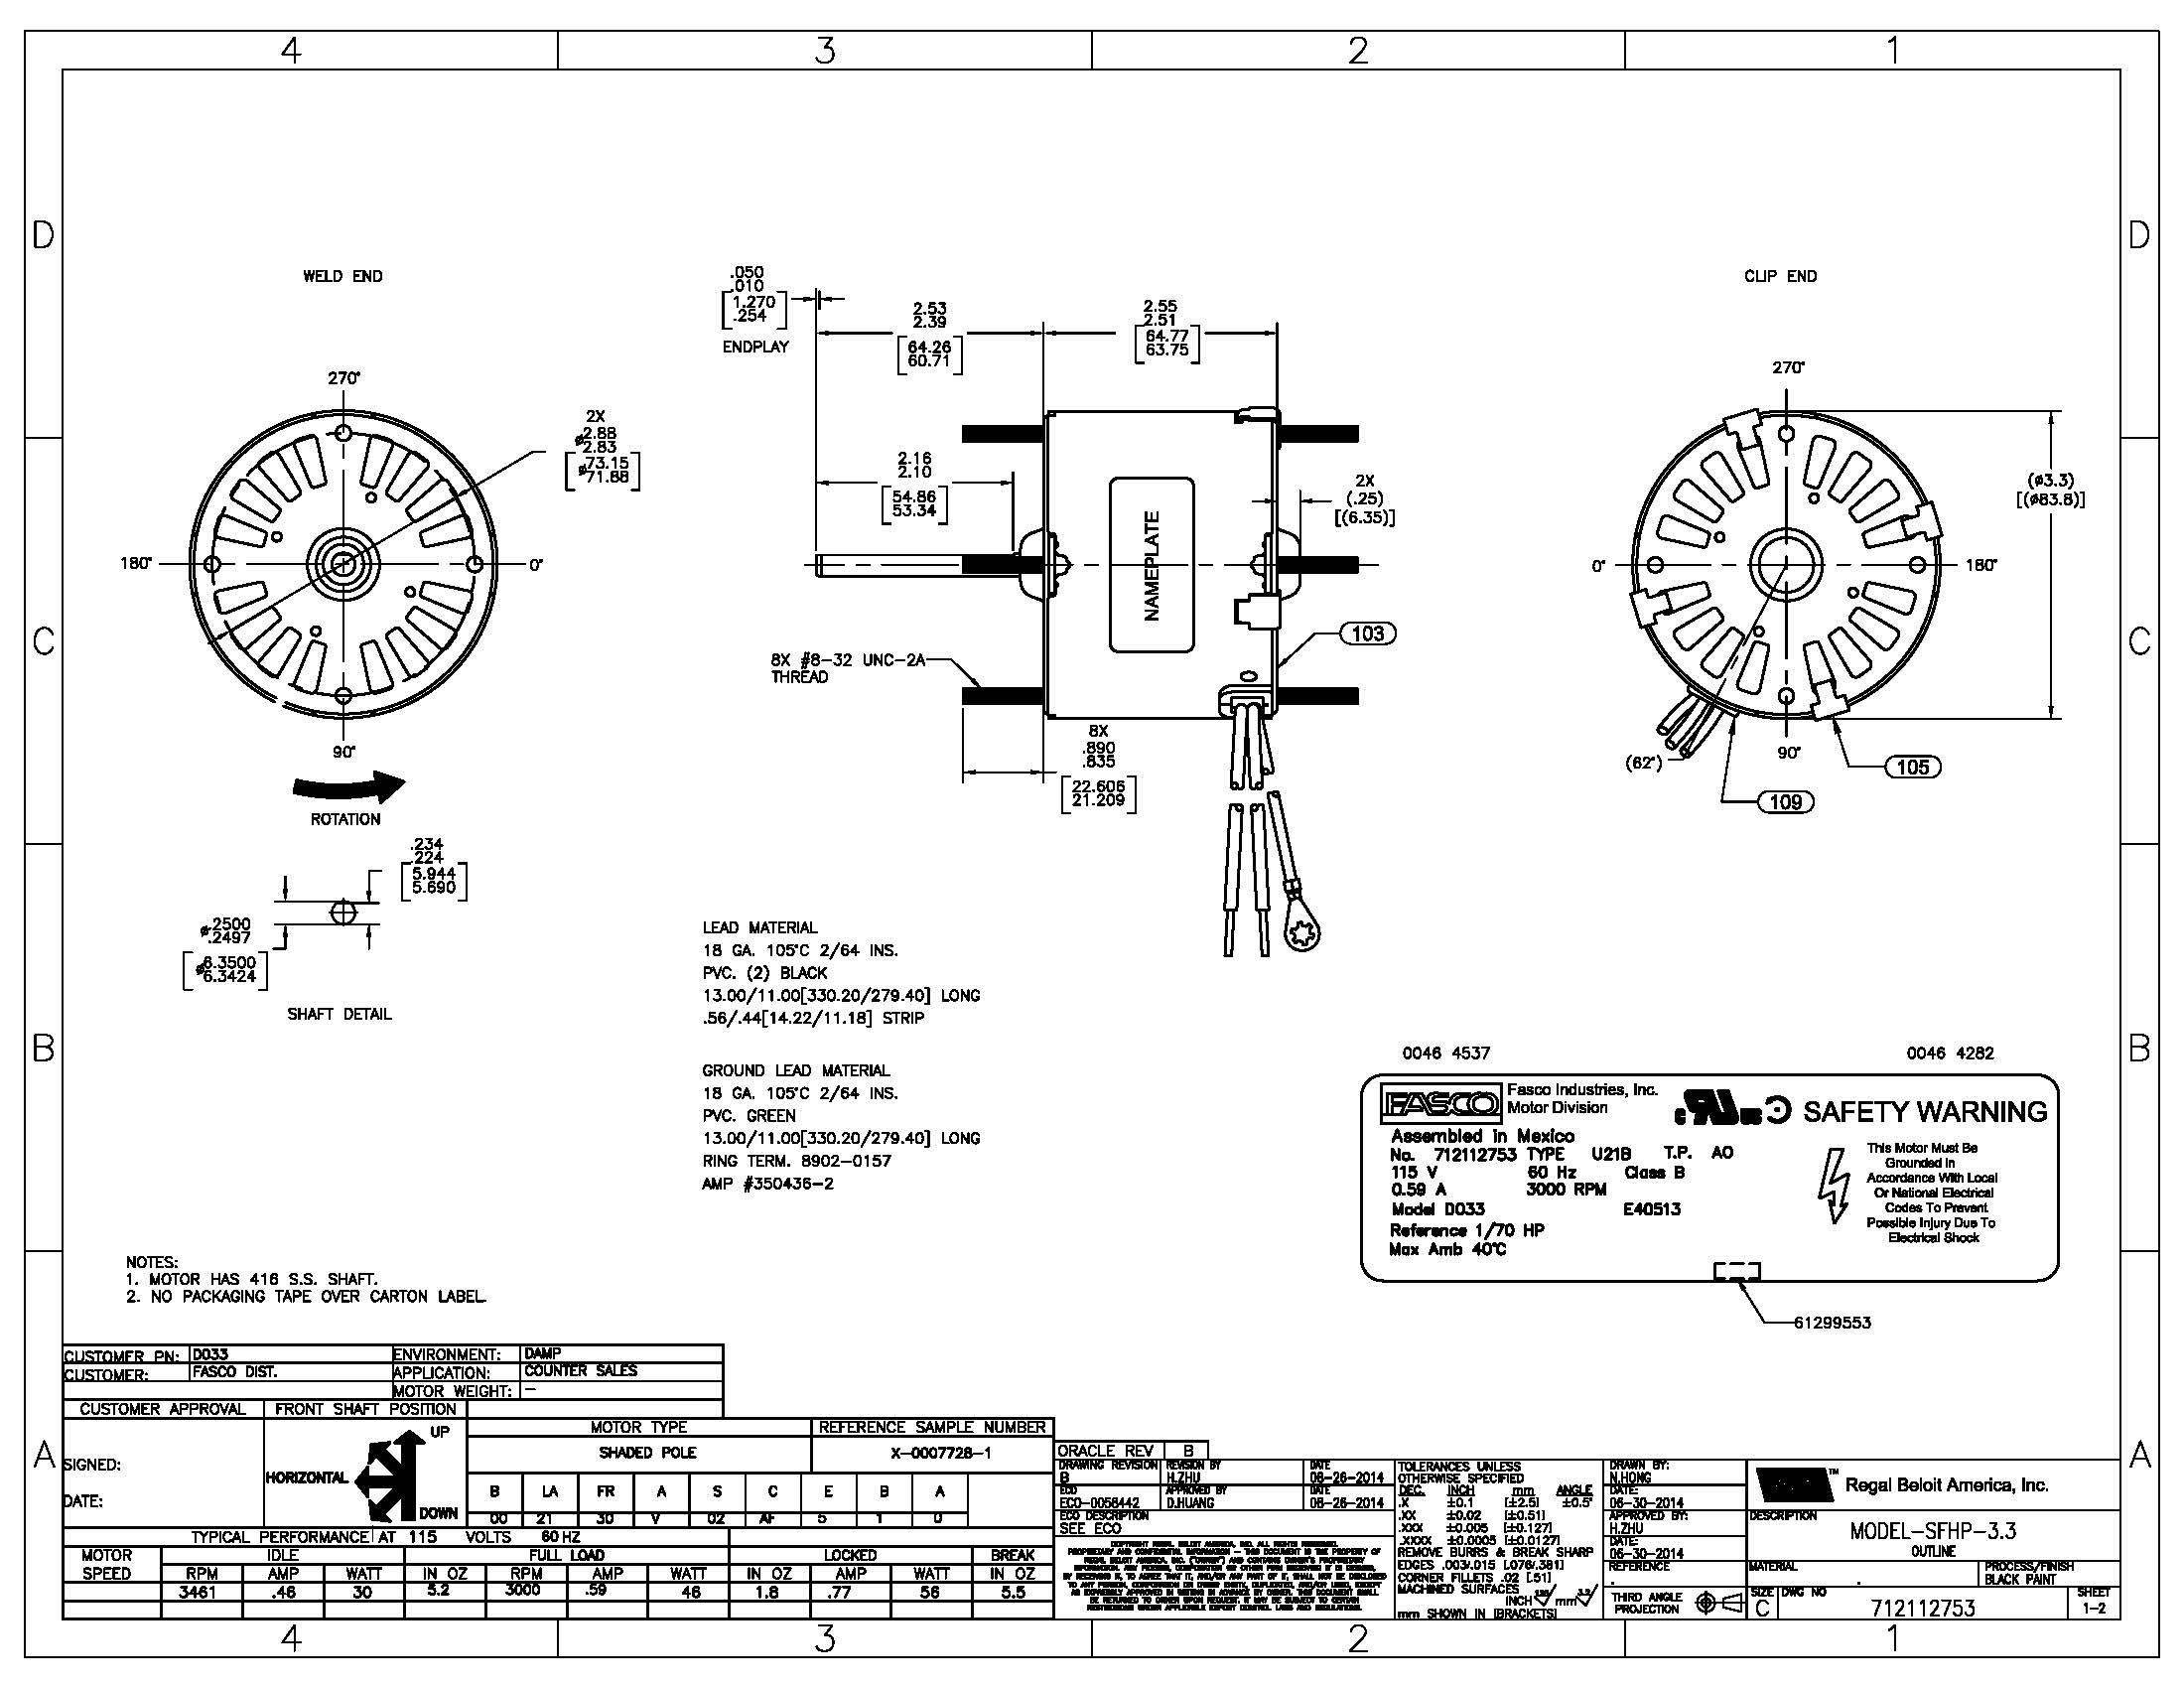 ao smith electric motor wiring diagram Download-Wiring Diagram for Ac Motor New Wiring Diagram Motor Fresh Ao Smith Electric Motor Wiring Diagram 10-s